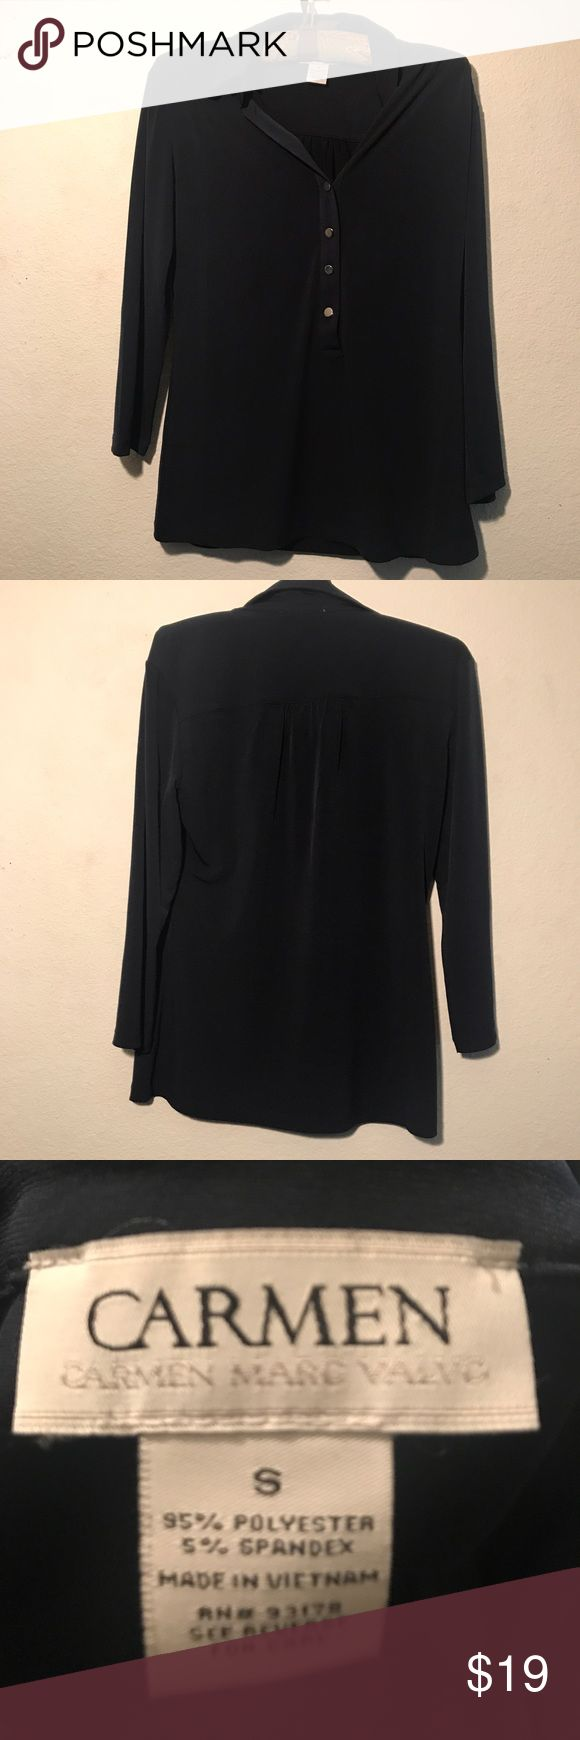 CARMEN MARC VALVO 4 button blouse - size small CARMEN MARC VALVO 4 button blouse - size small. The four buttons are scuffed a tiny amount. Carmen Marc Valvo Tops Blouses